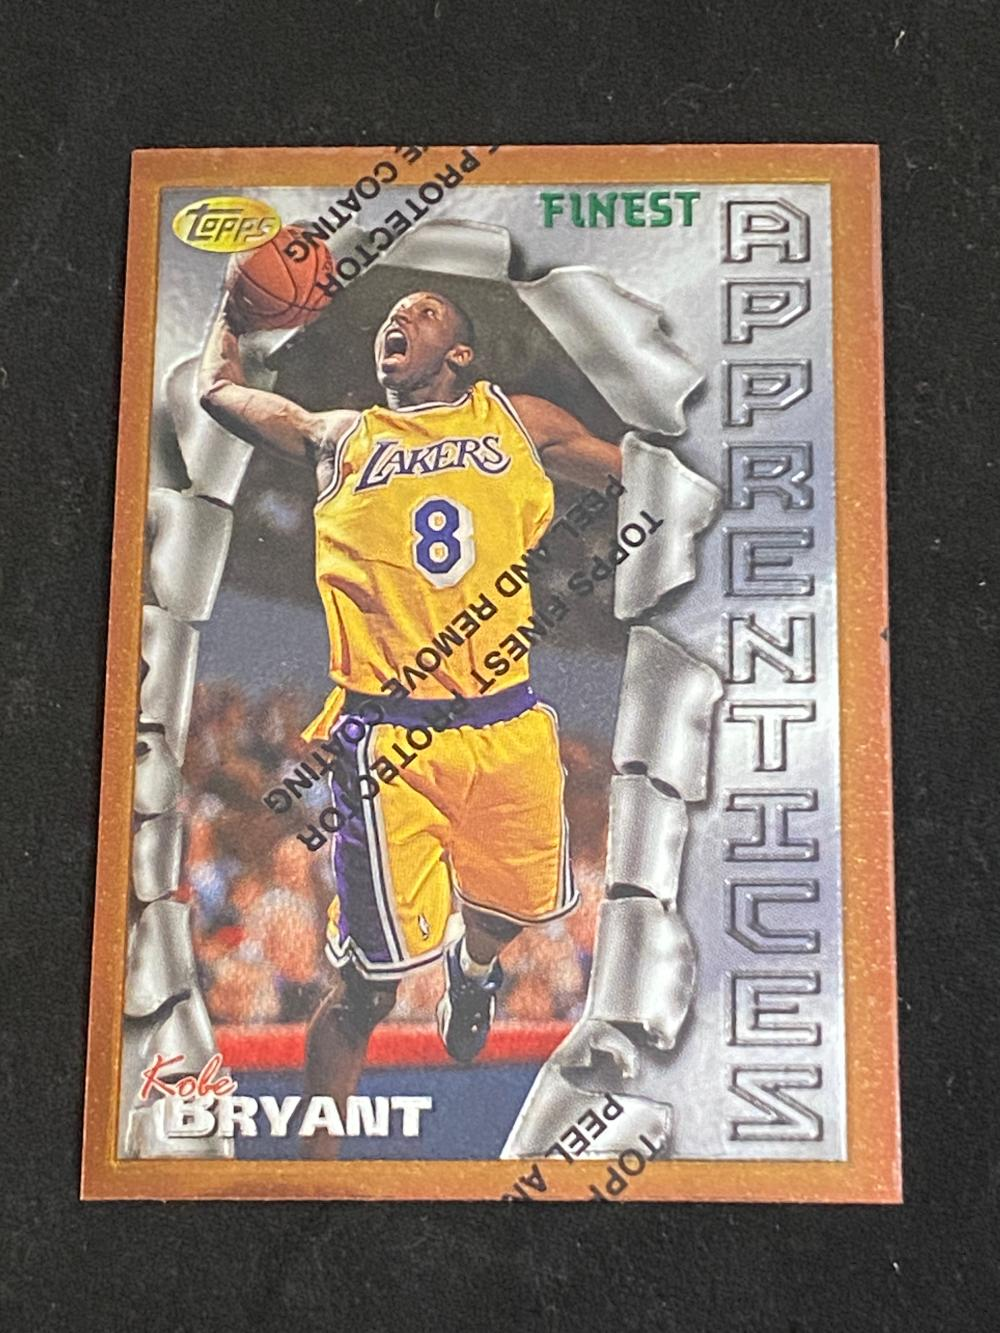 (Mint) 1996-97 Topps Finest Kobe Bryant Rookie (W/ Protective Seal) #74 Basketball Card